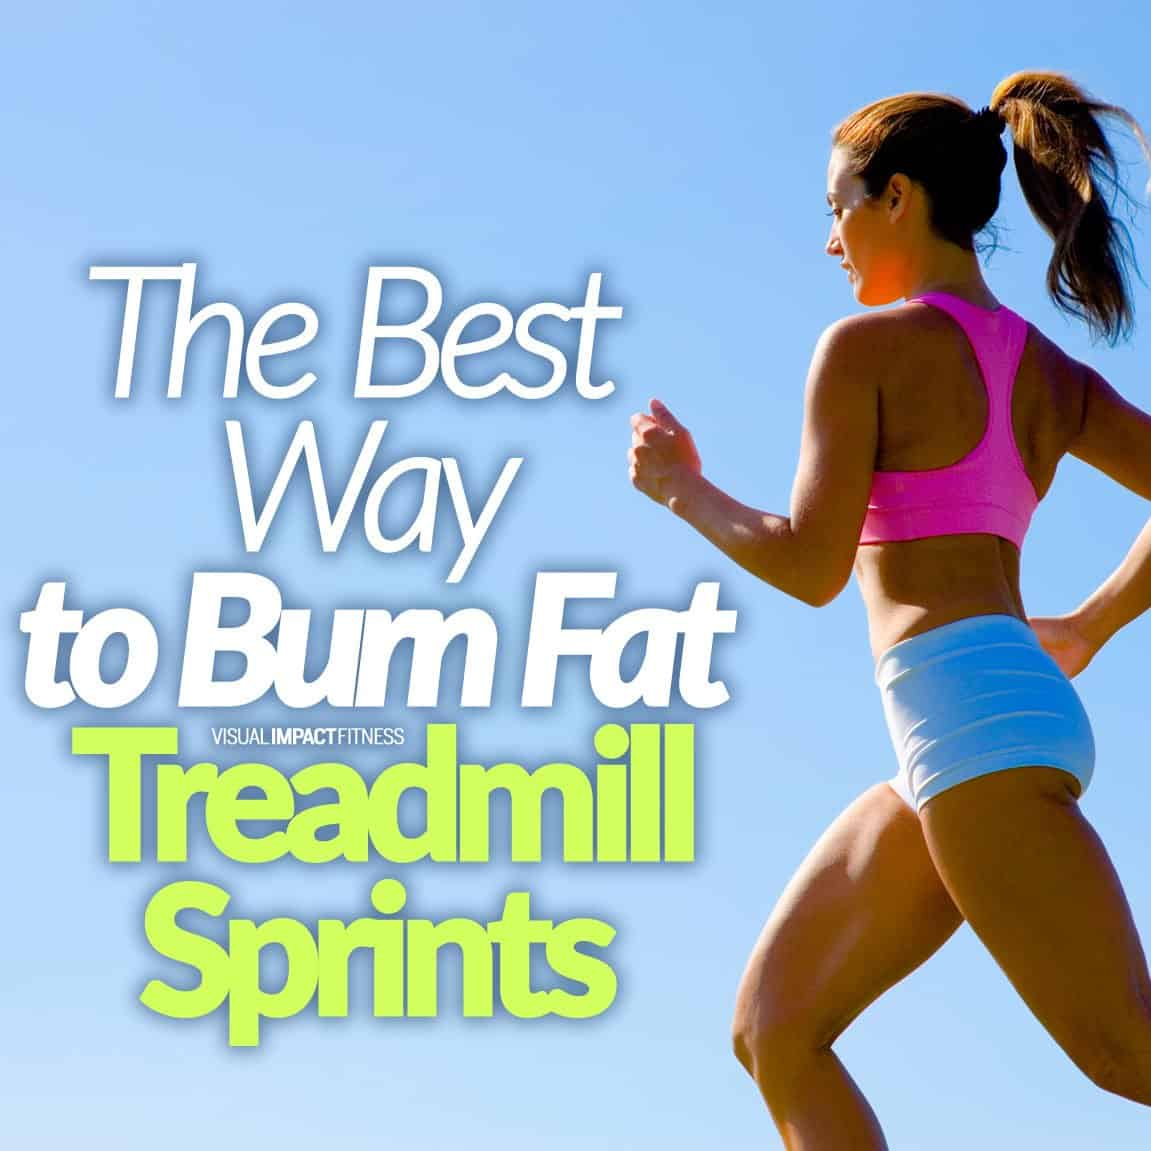 The Best Way to Burn Fat - Treadmill Sprints